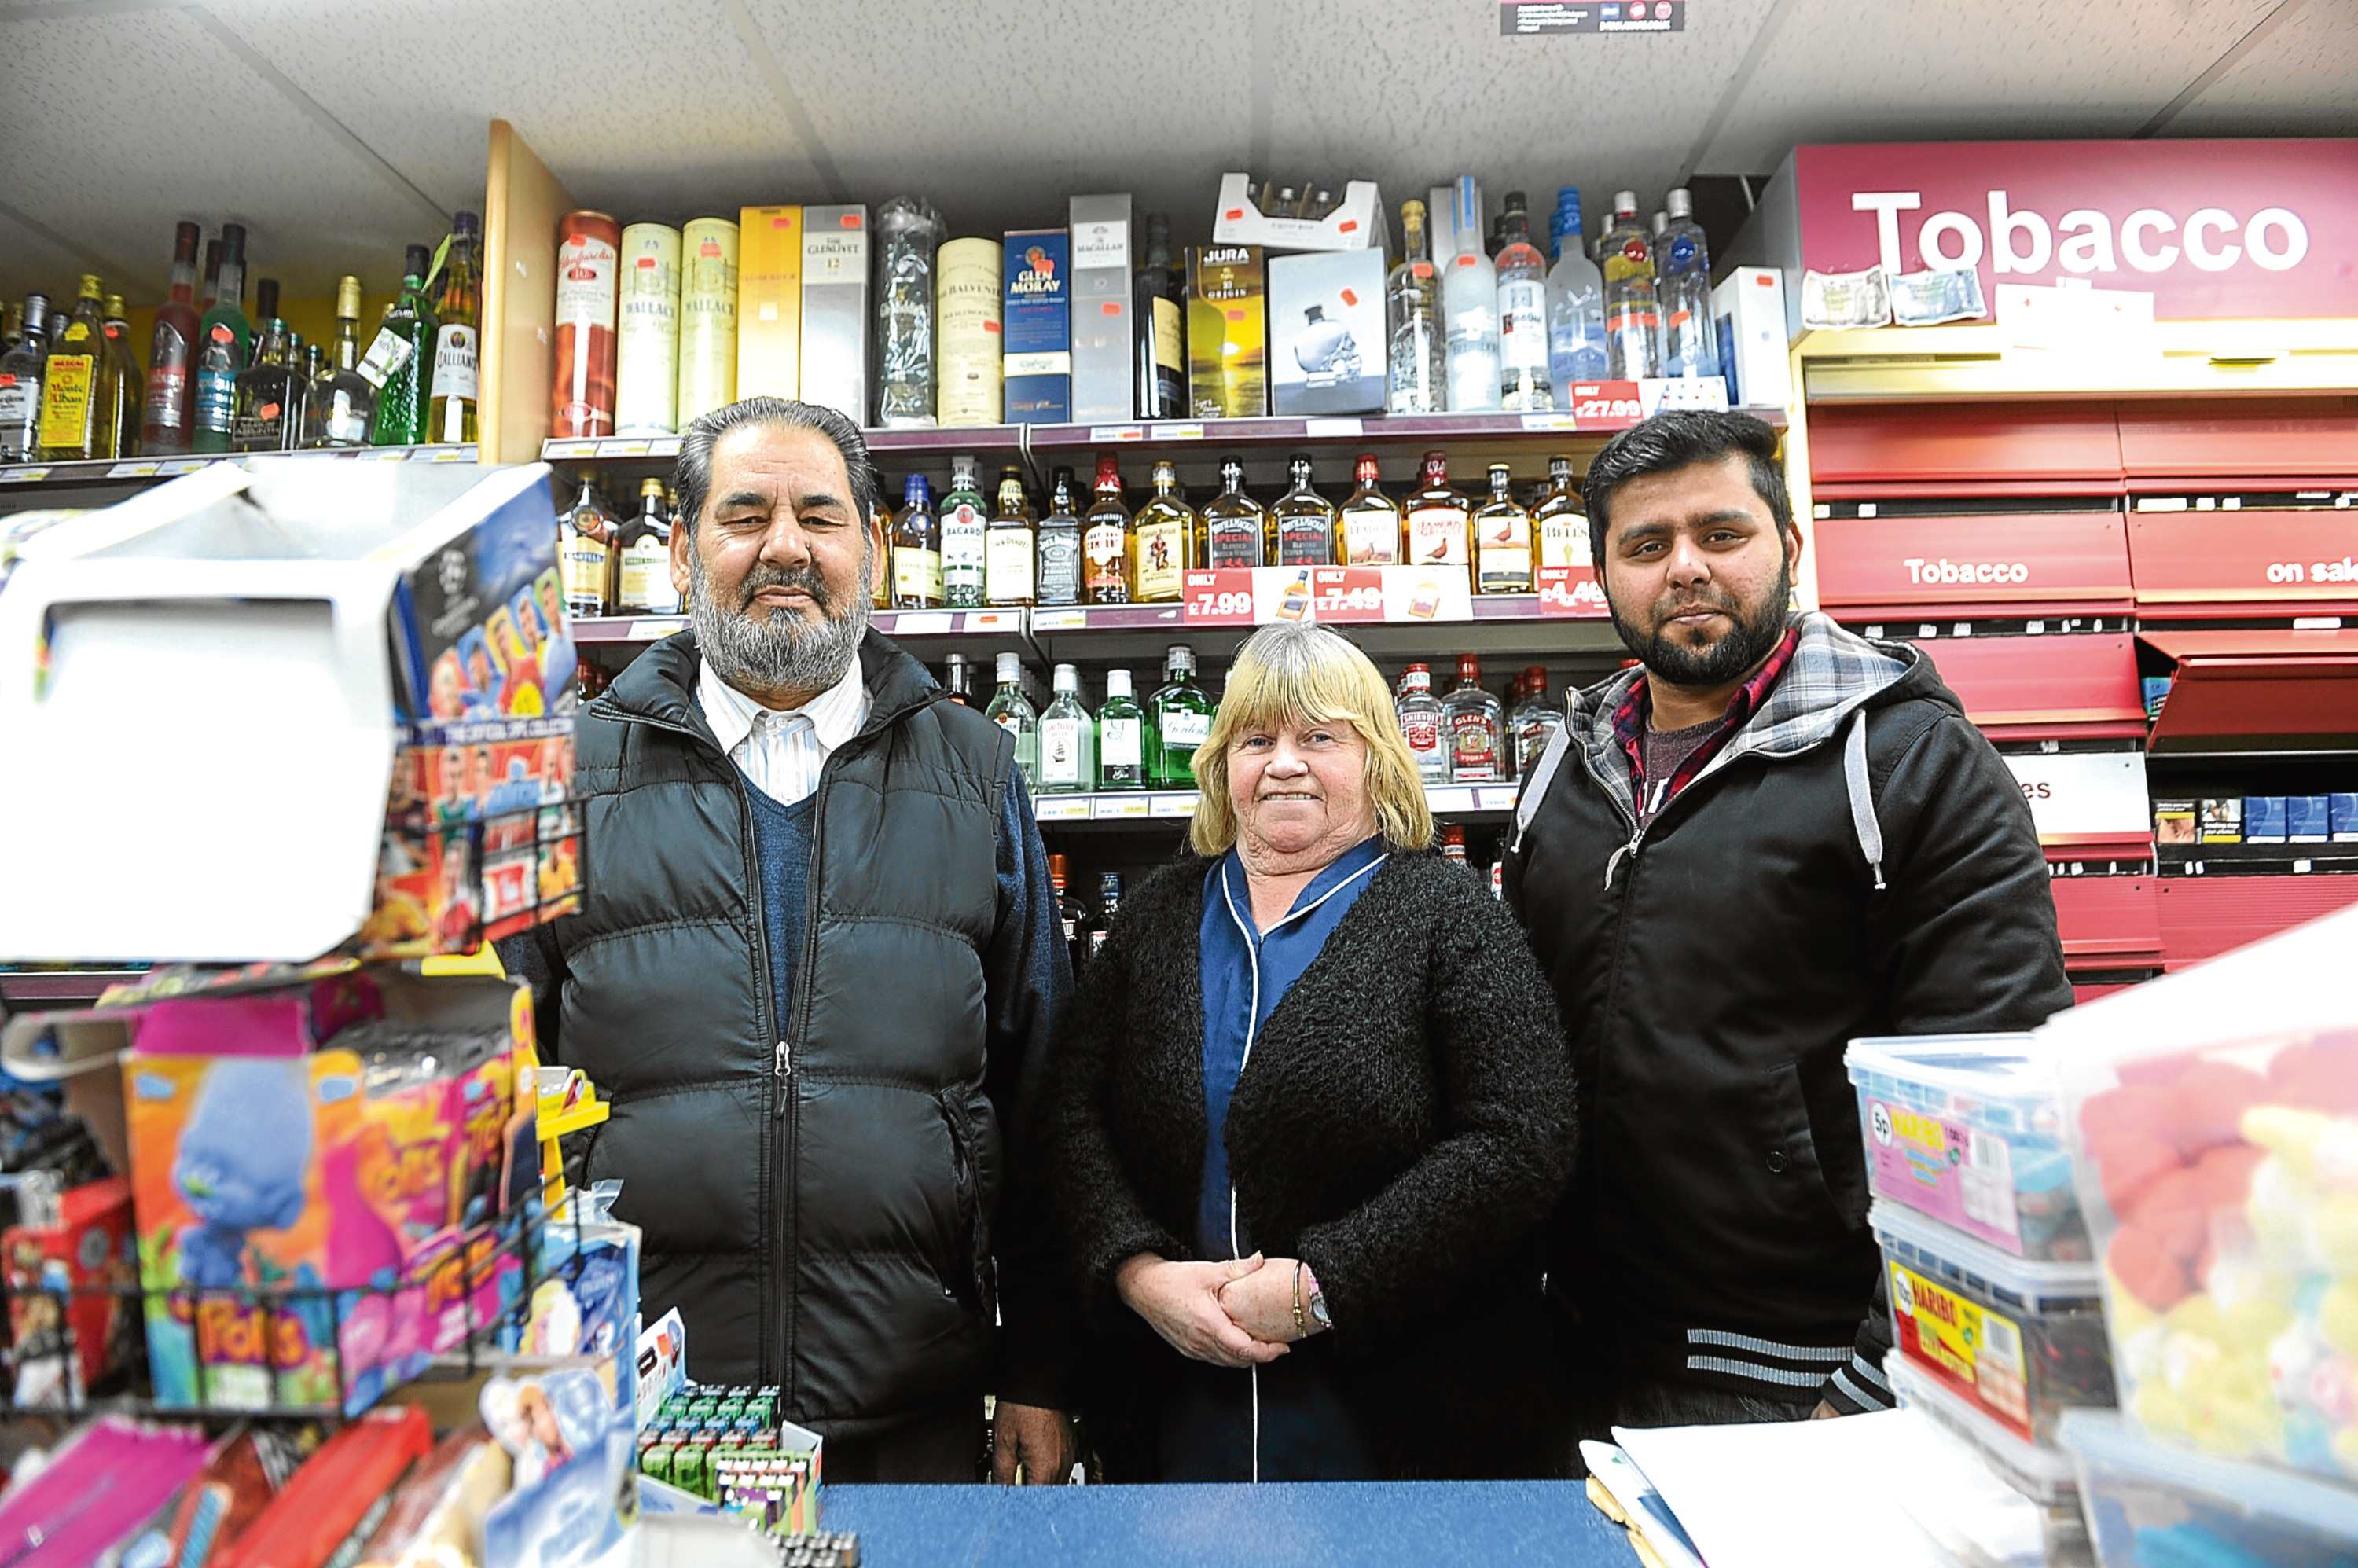 Staff members Mohammed Ataullah-Anis, Lorraine Anderson and Mohammed Zeshan.